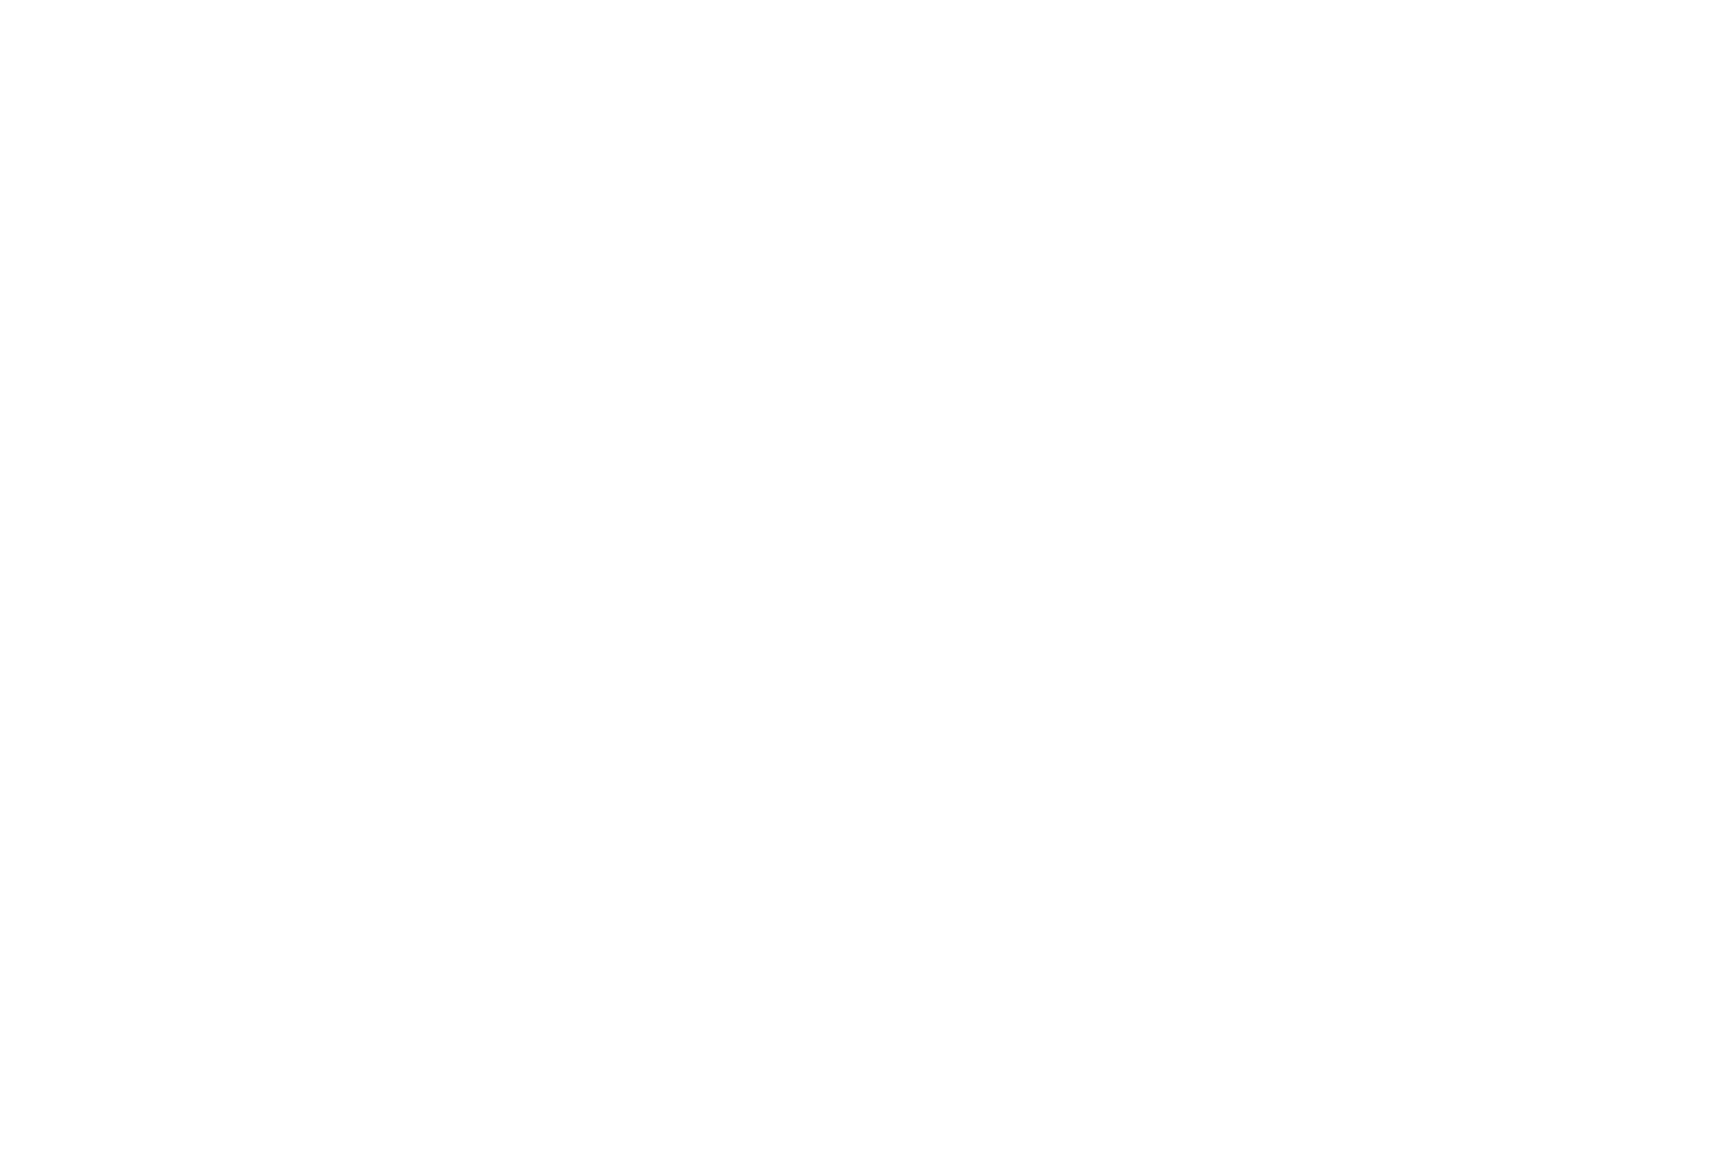 OFFICIAL SELECTION - 7th Annual Georgia International Latino Film Festival - 2017.png